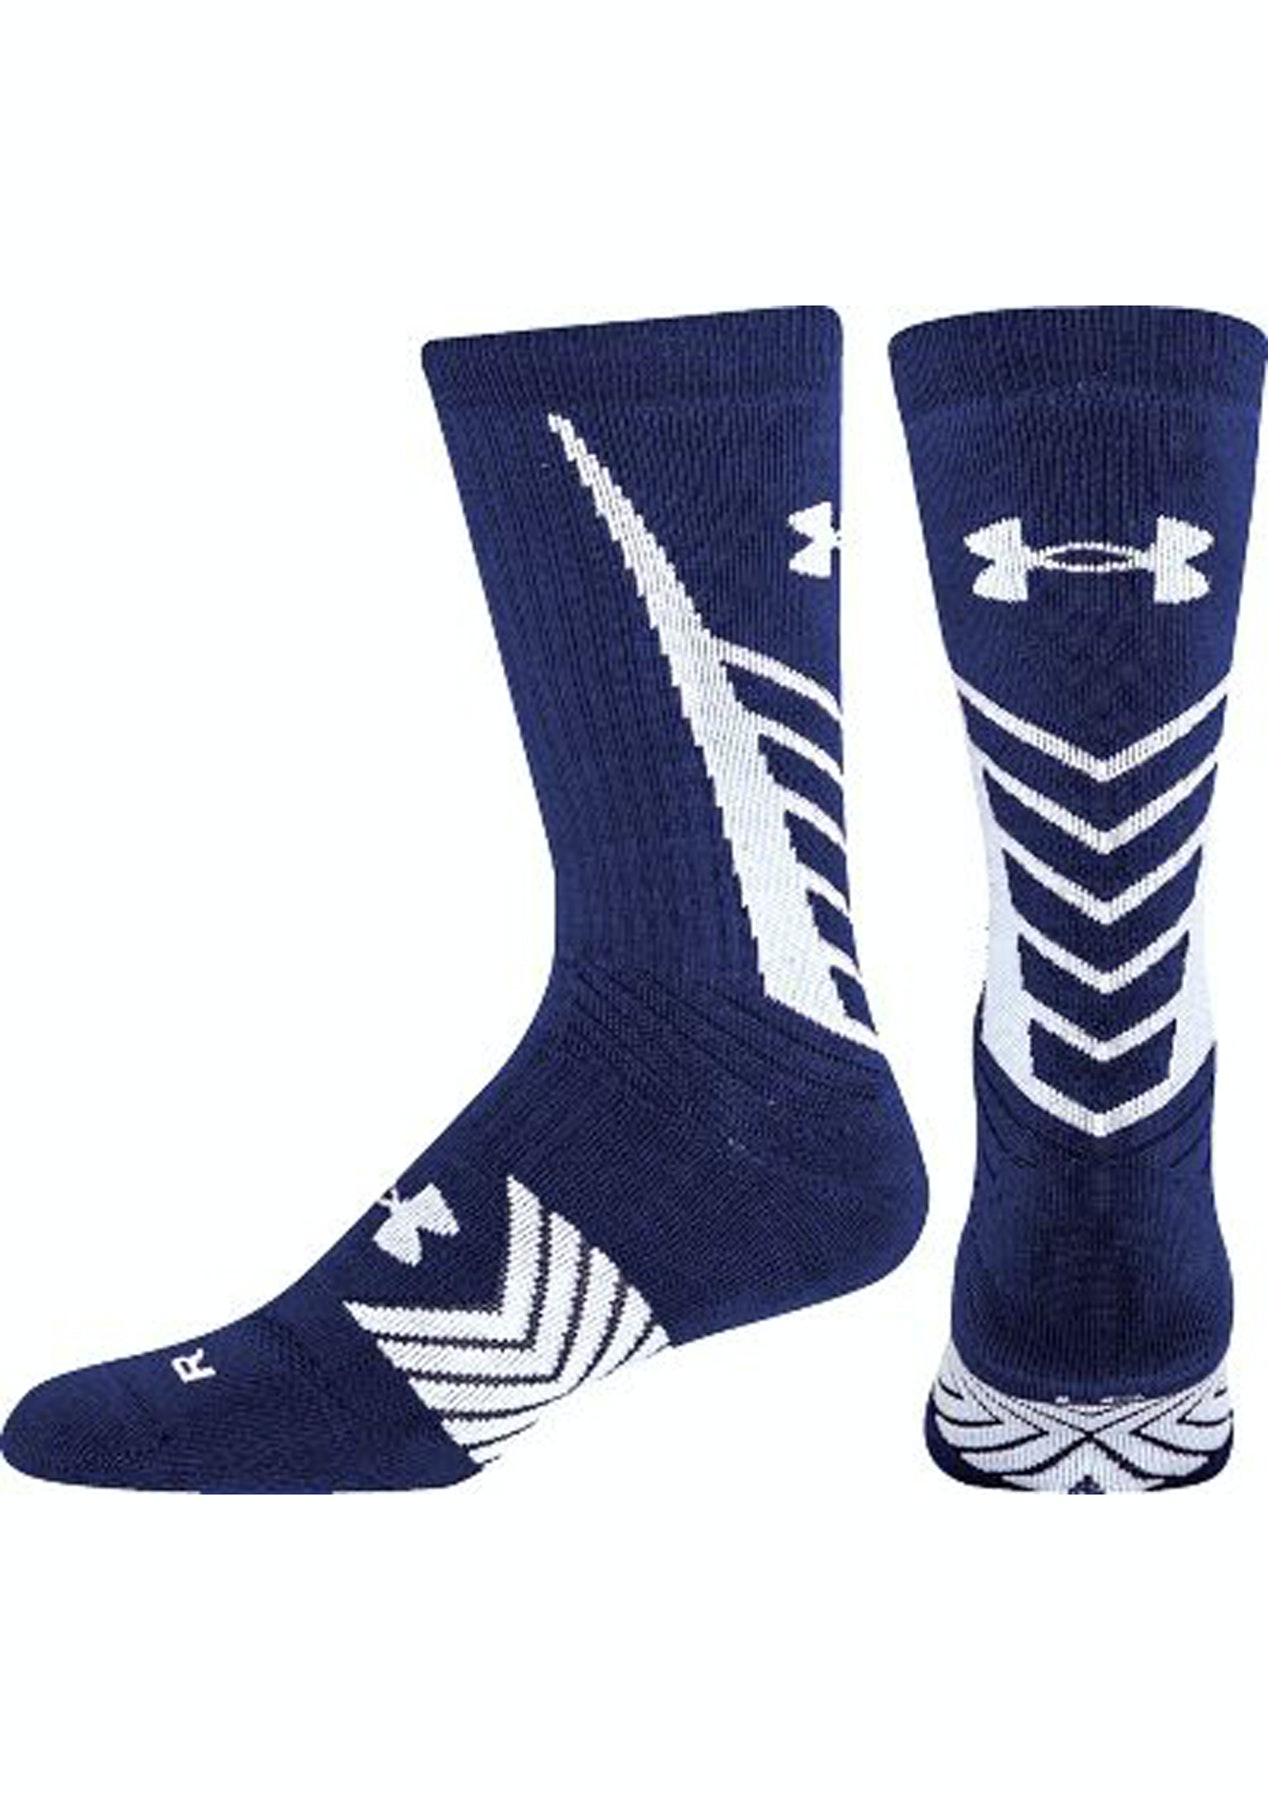 ce635639678a Under Armour Mens Undeniable Crew Socks - Navy/White - Boxing Day Under  Armour - Onceit